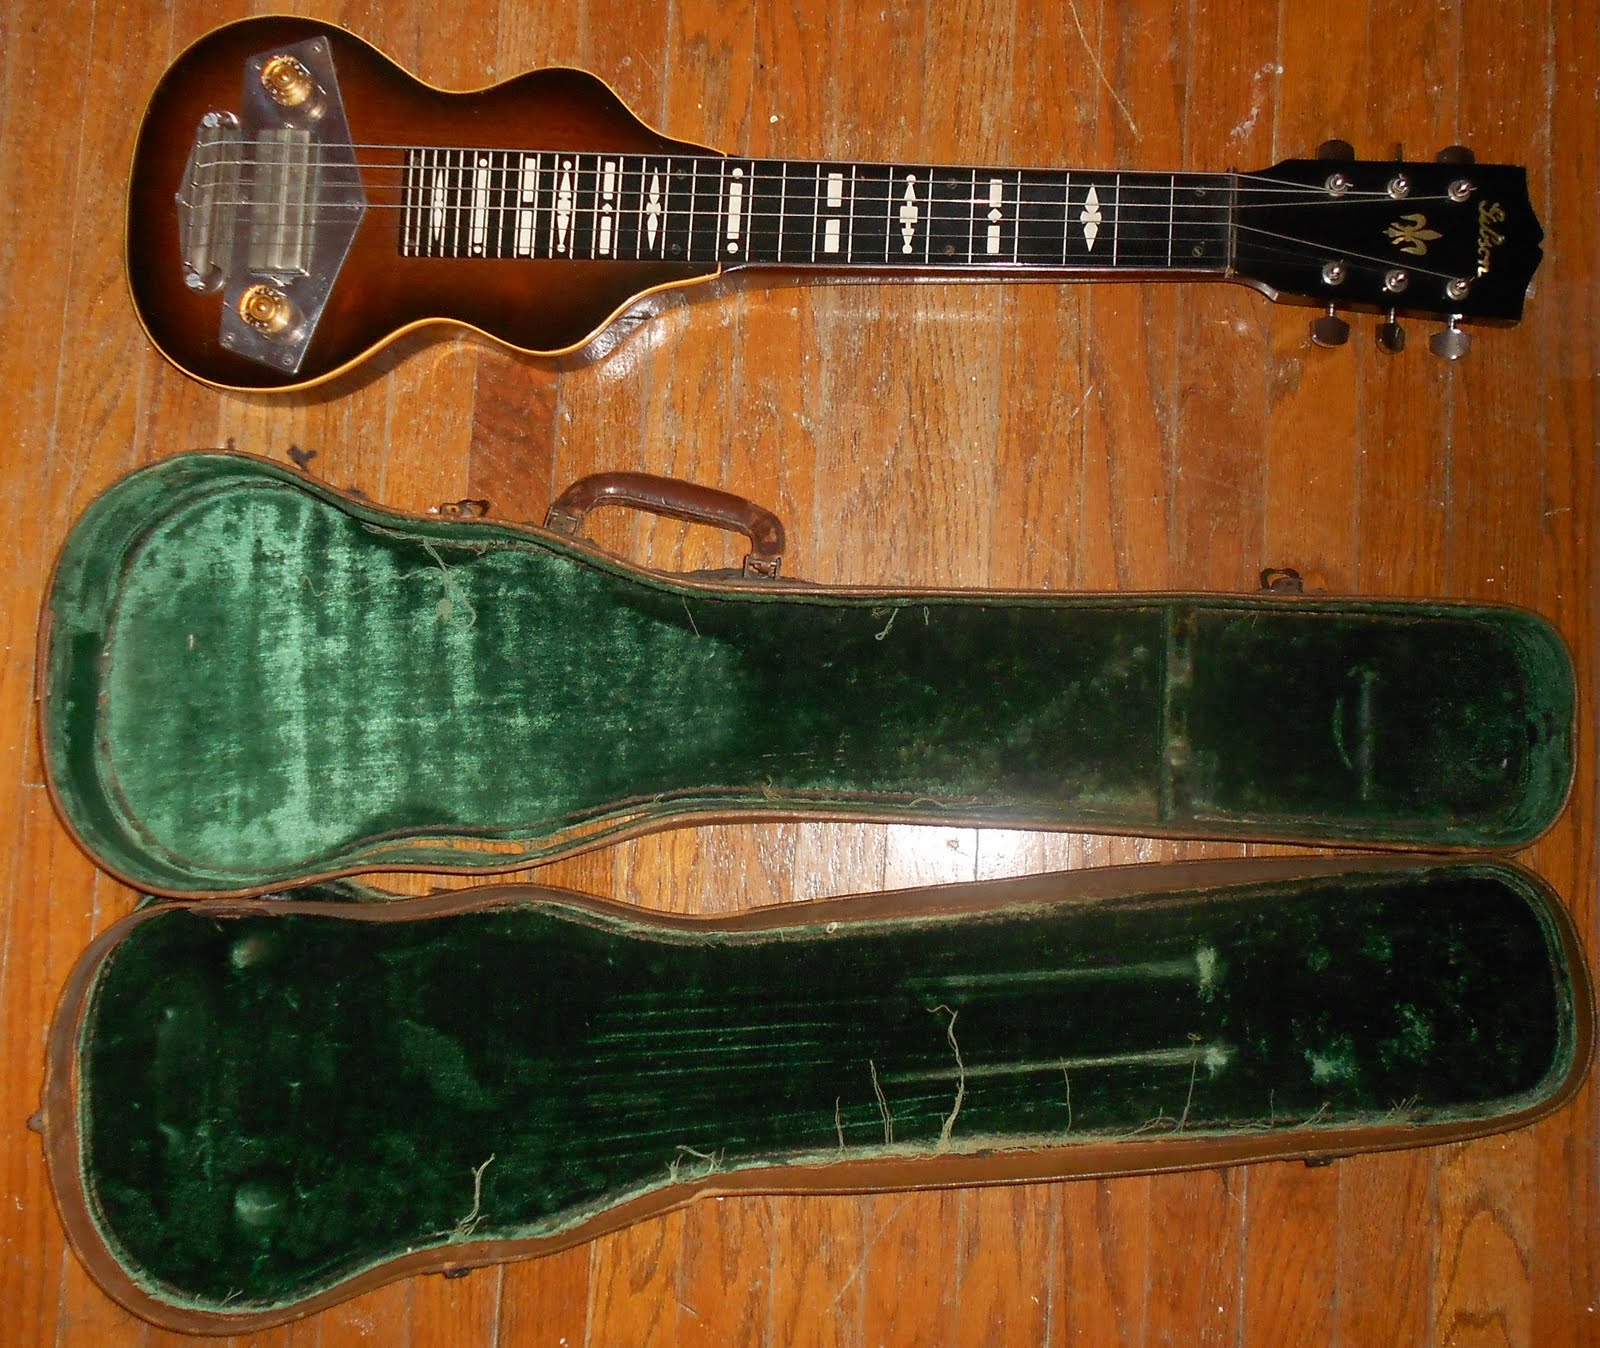 Old Gibson Guitars Free Download 1965 Es345 Wiring Repair Chicago Fret Works Guitar Help With Rare Vintage On Ebay At